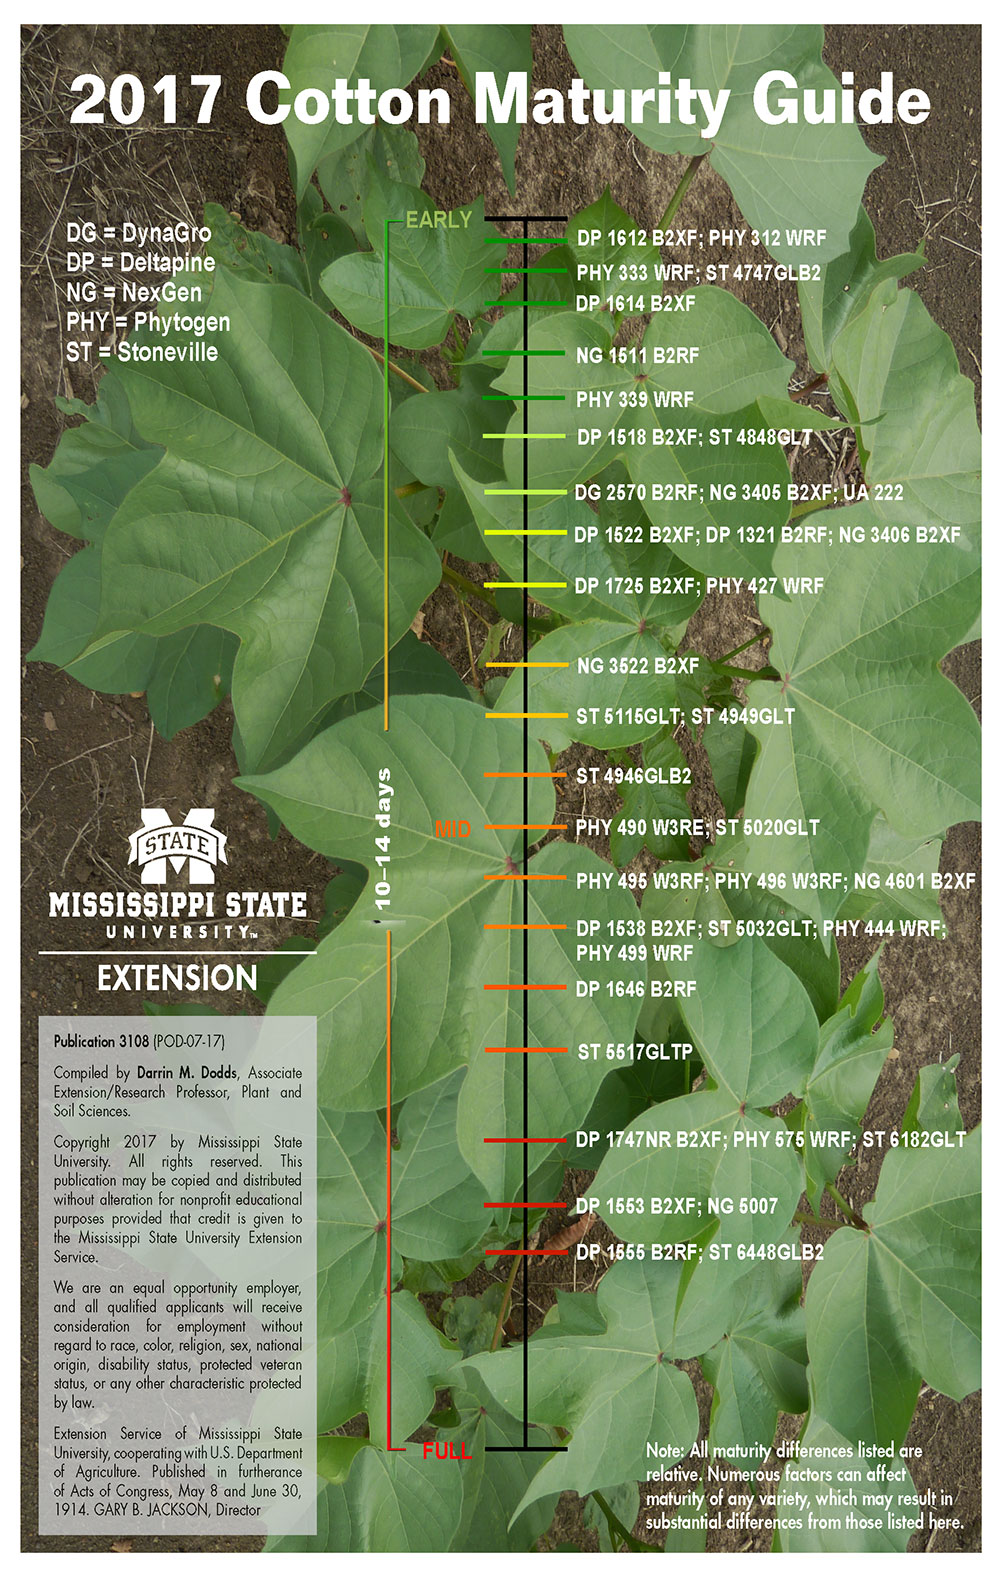 An image of the cotton maturity guide publication.